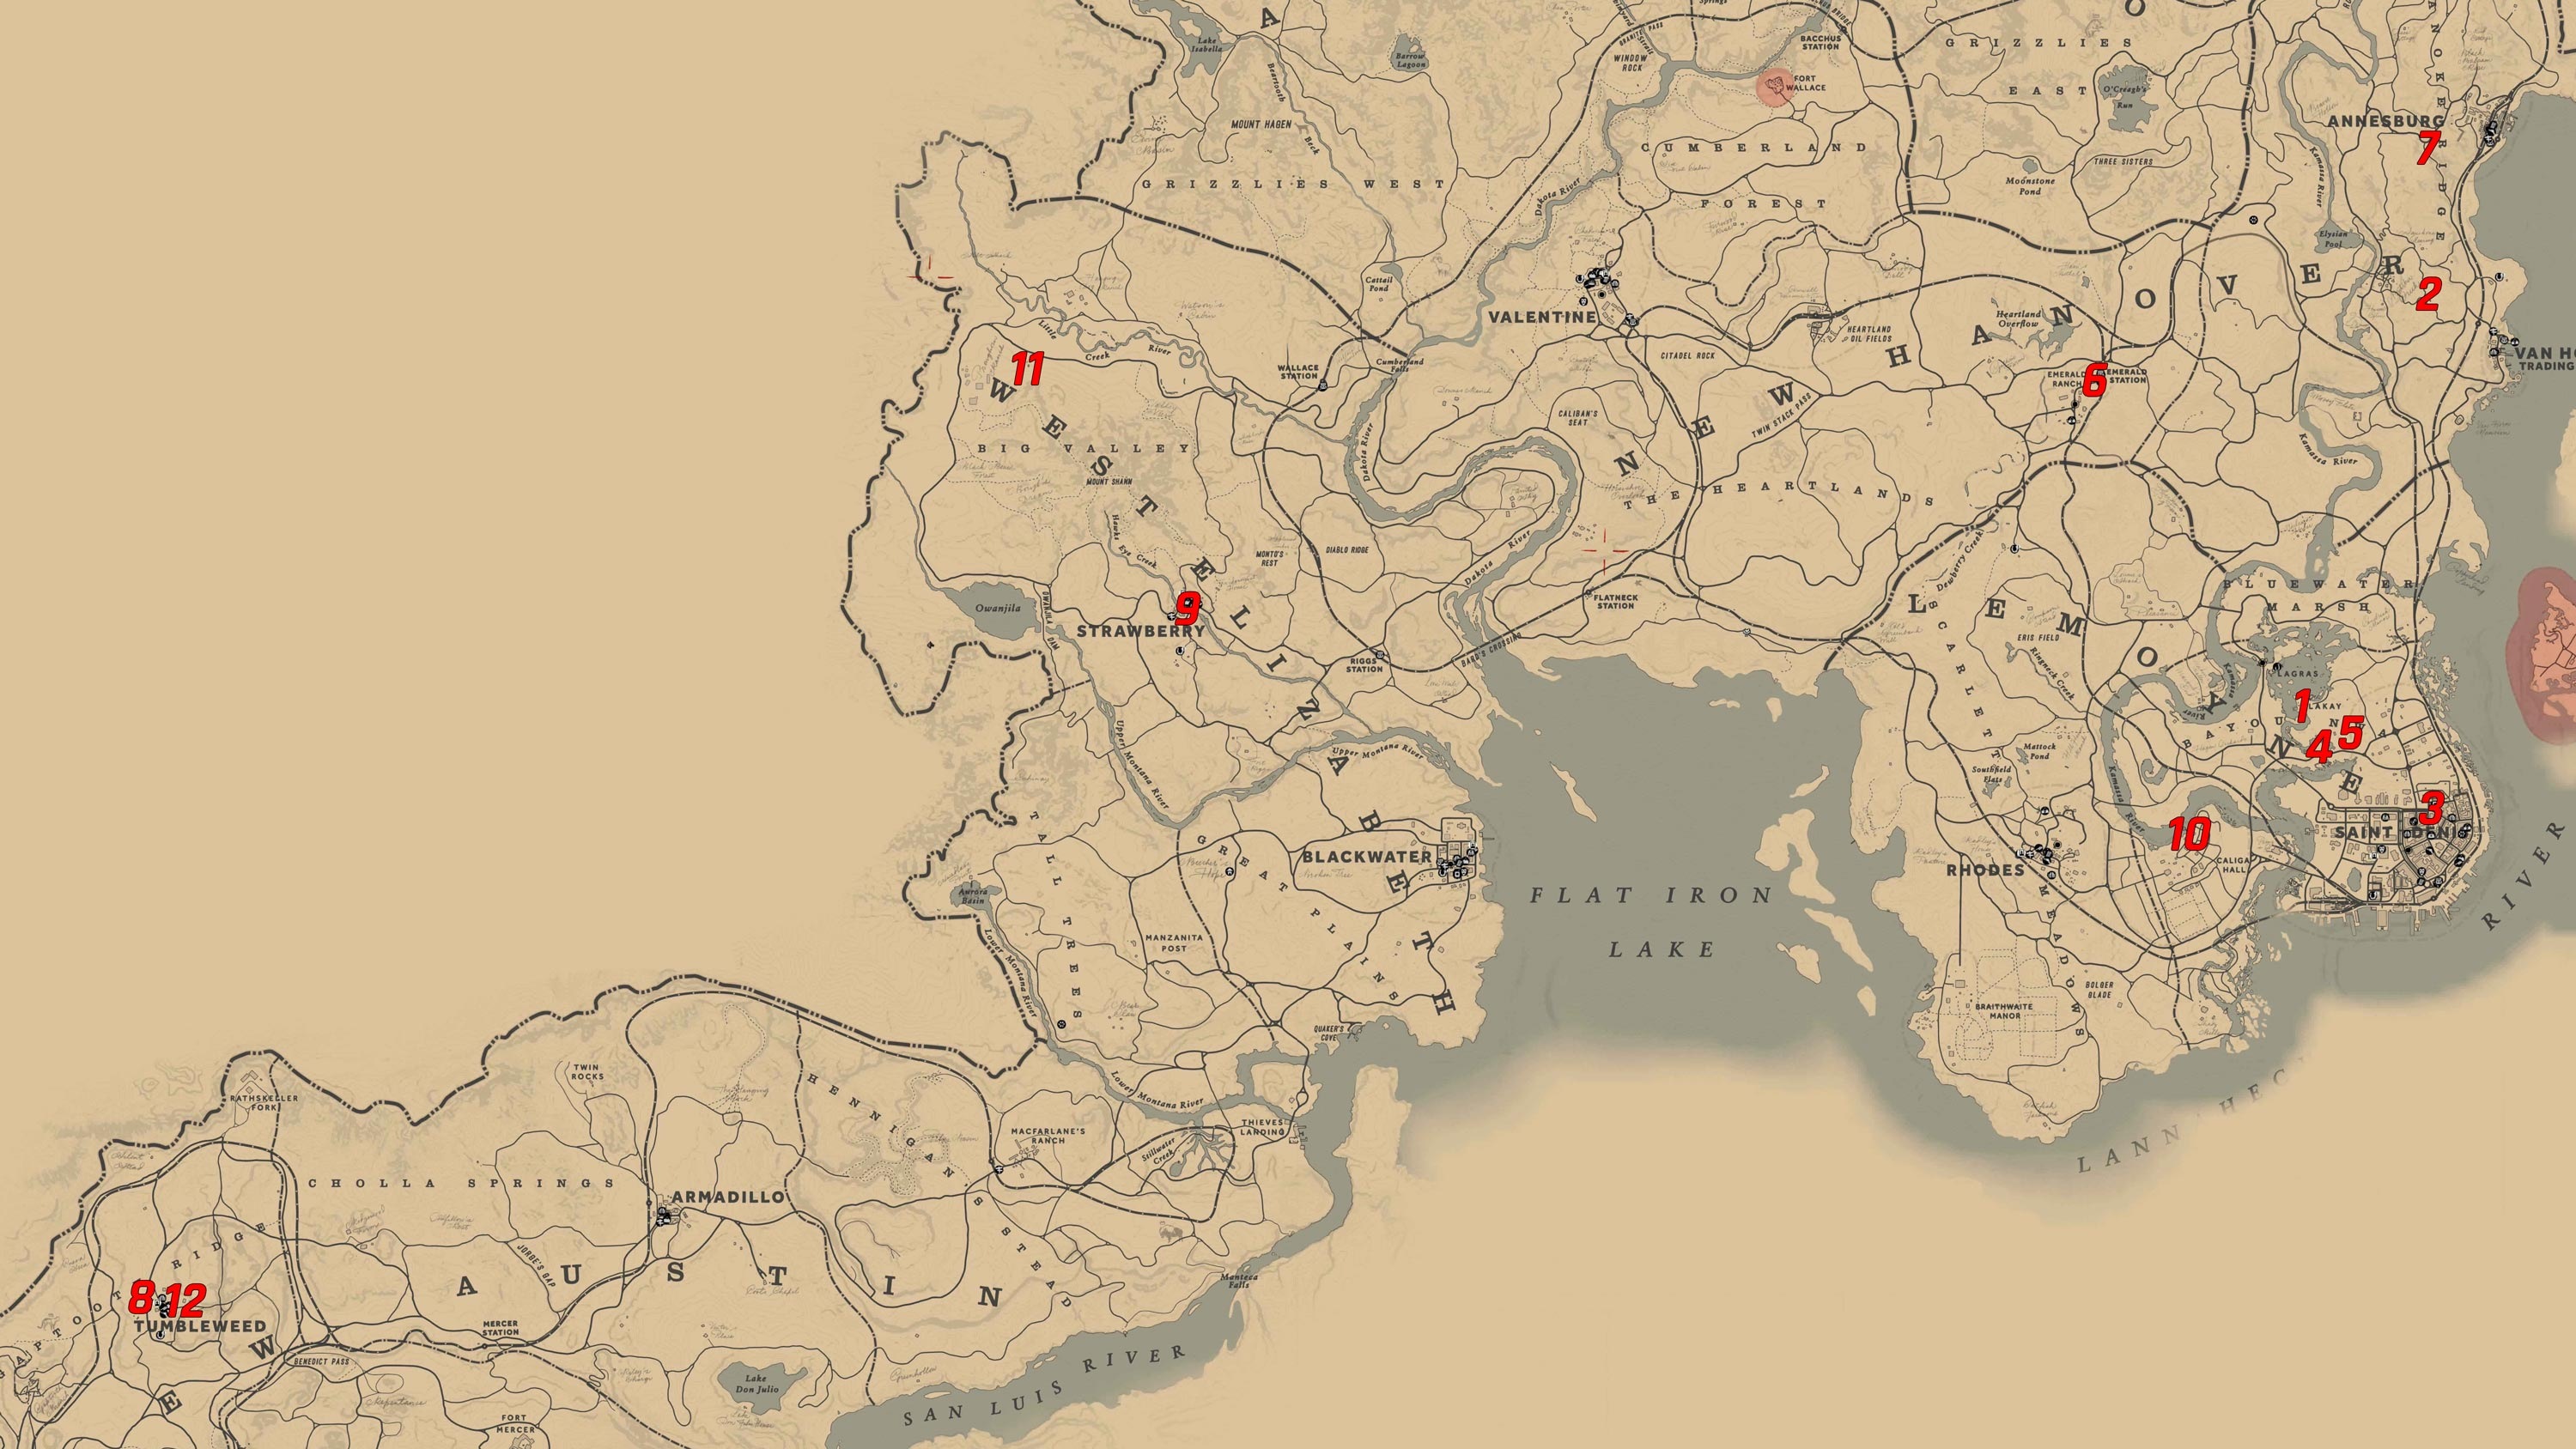 Red Dead Redemption Us Map.All Flora Of North America Cigarette Cards In Red Dead Redemption 2